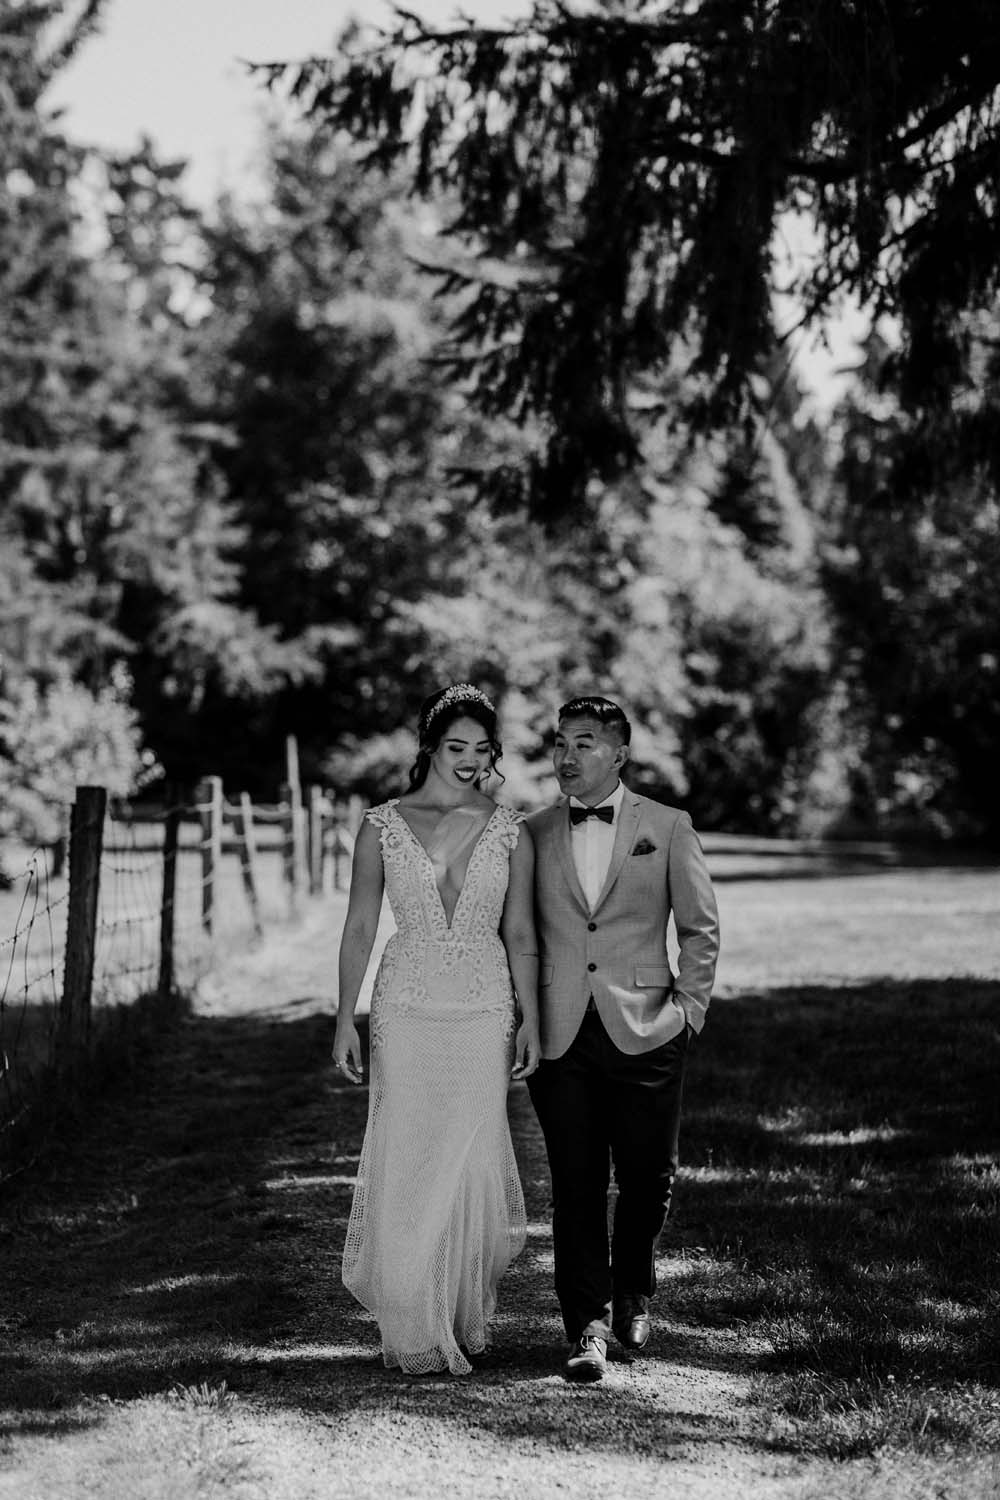 A Romantic and Ethereal Celebration in Fort Langley, BC - couple